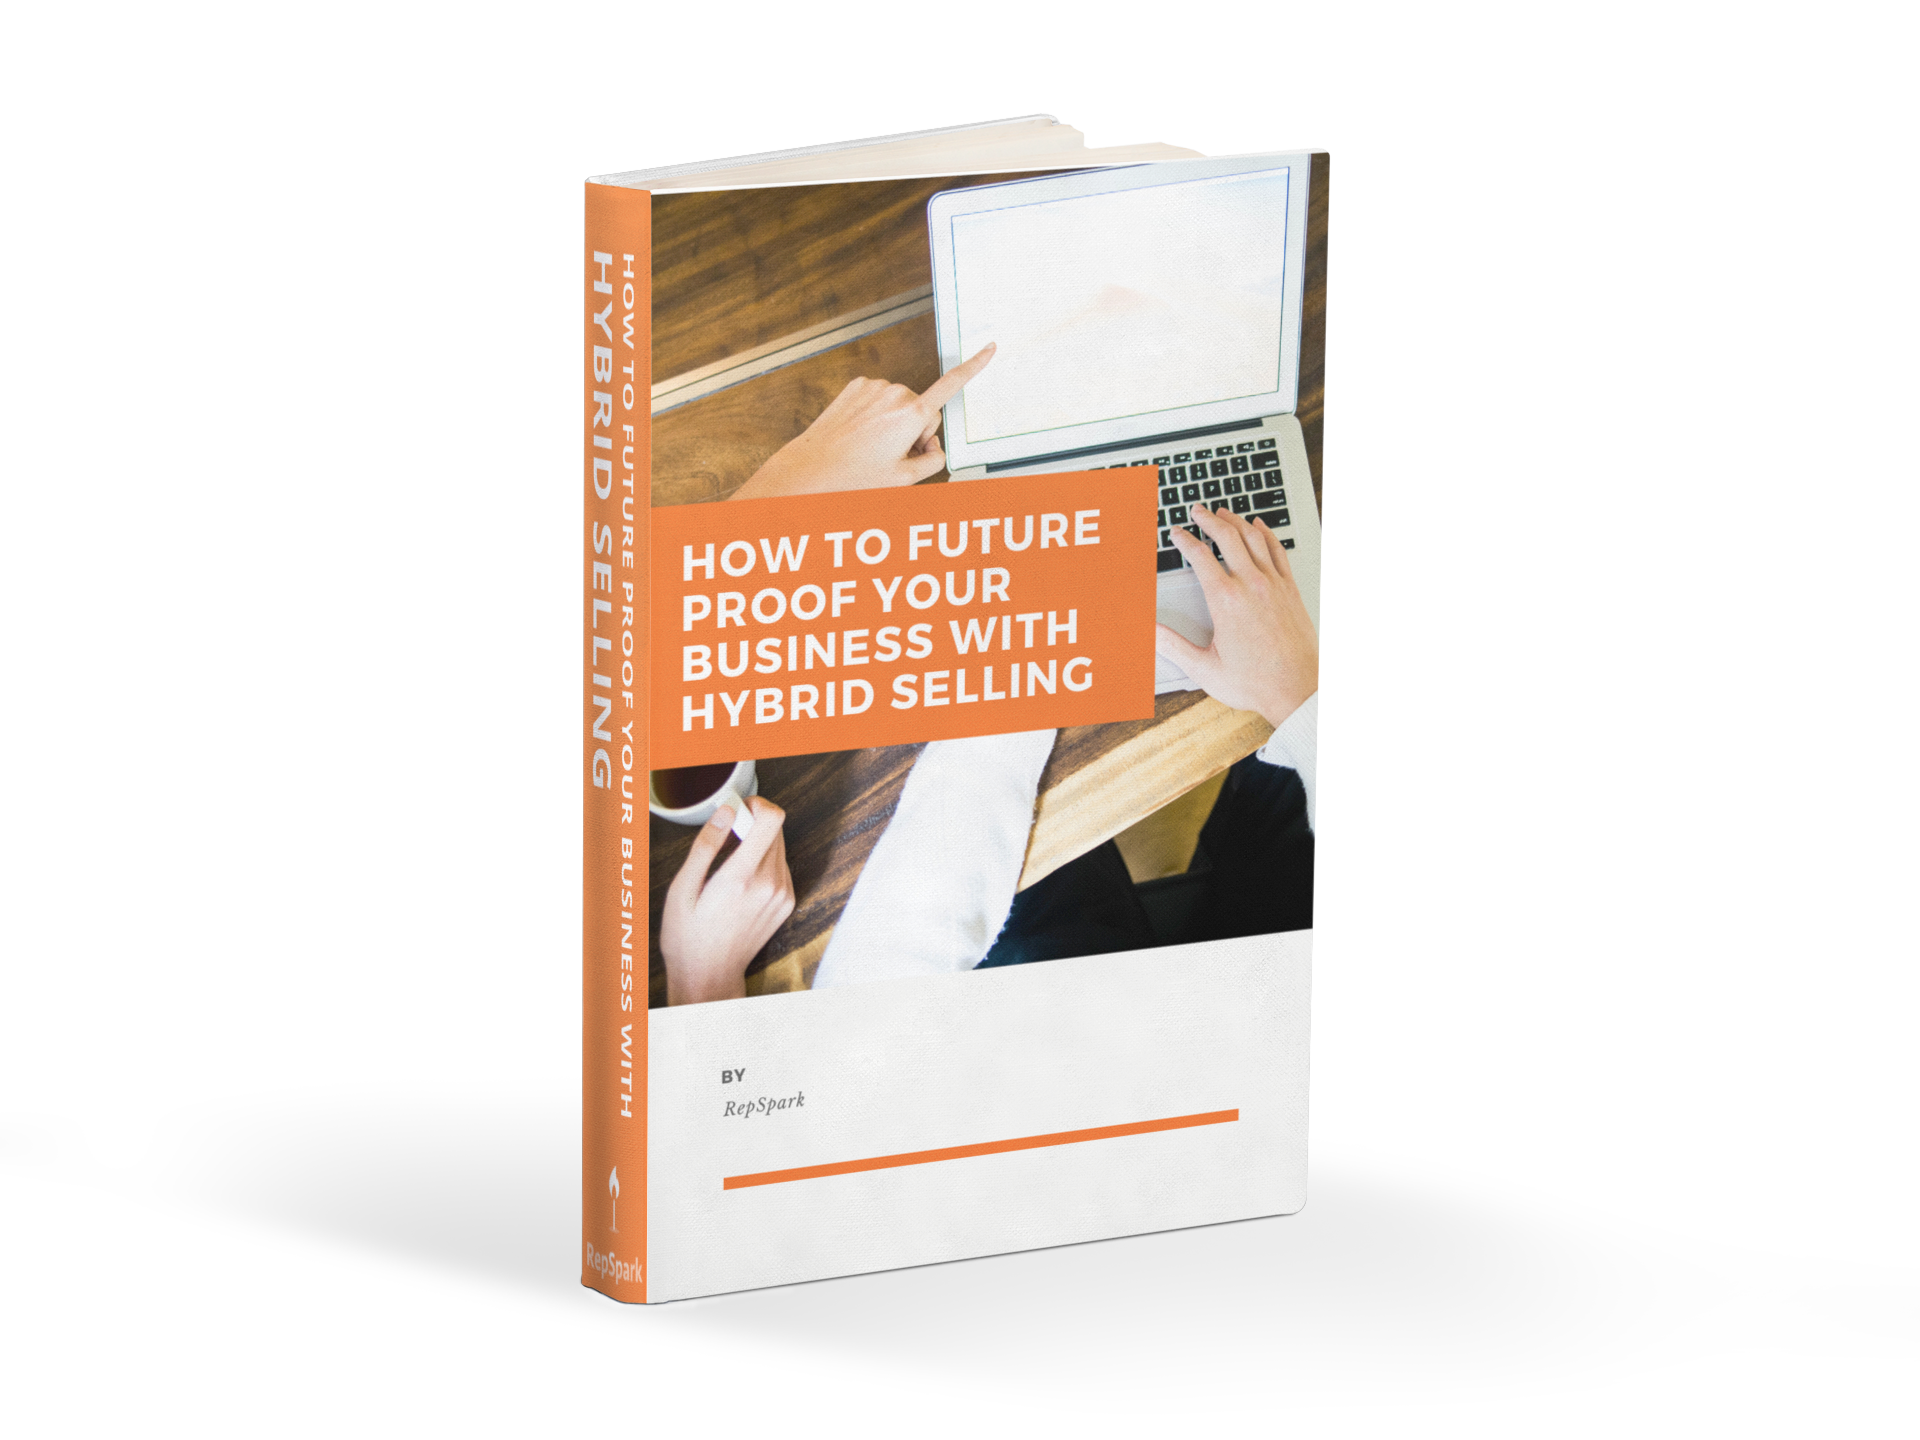 hybrid-selling guide cover